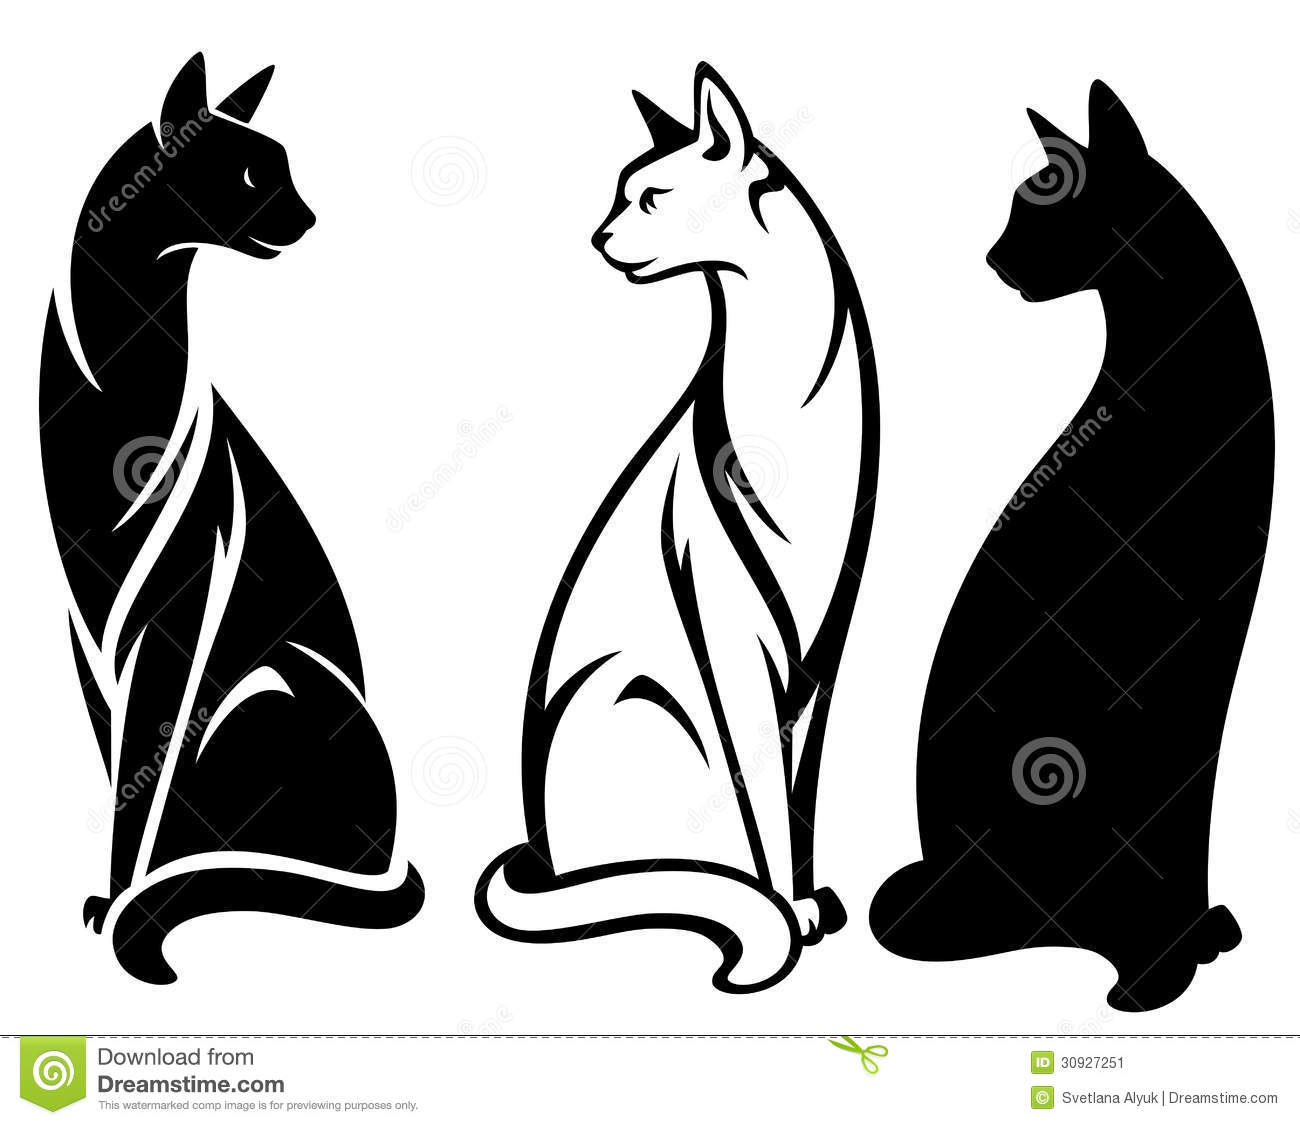 Elegant sitting cats design - black and white outlines and silhouette.